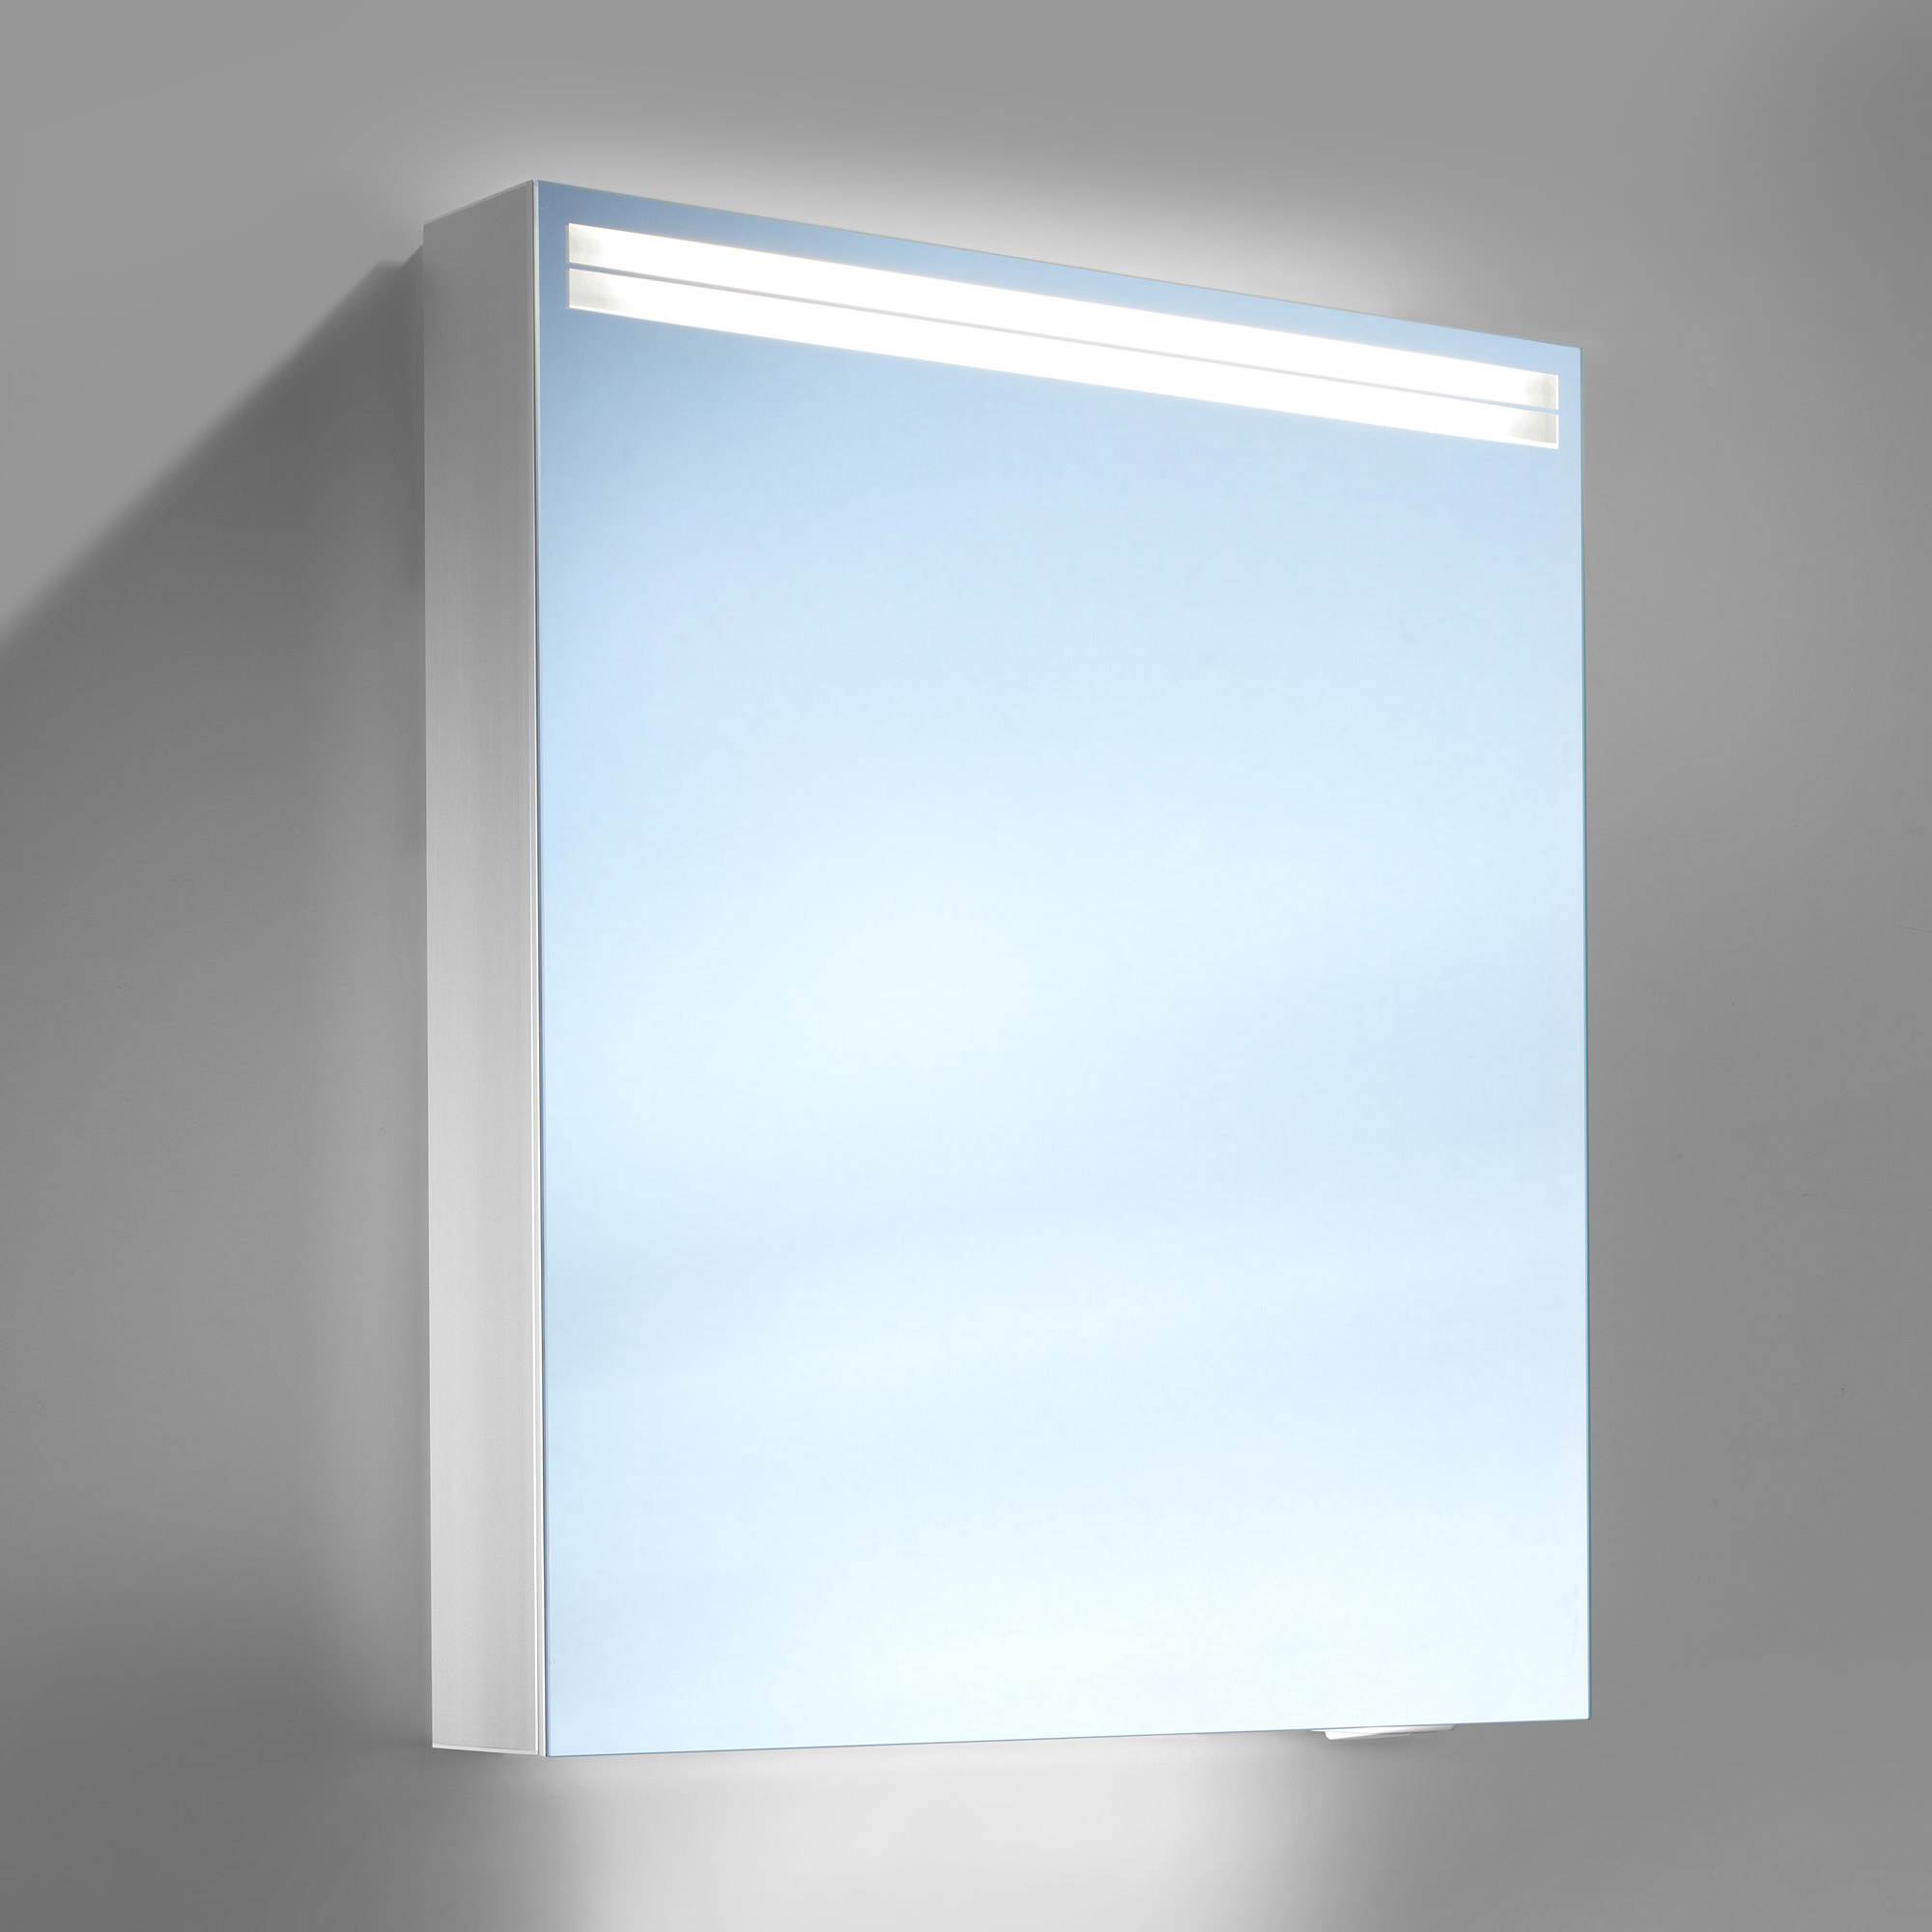 Schneider arangaline 500mm 1 door mirror cabinet with led for Bathroom cabinets led